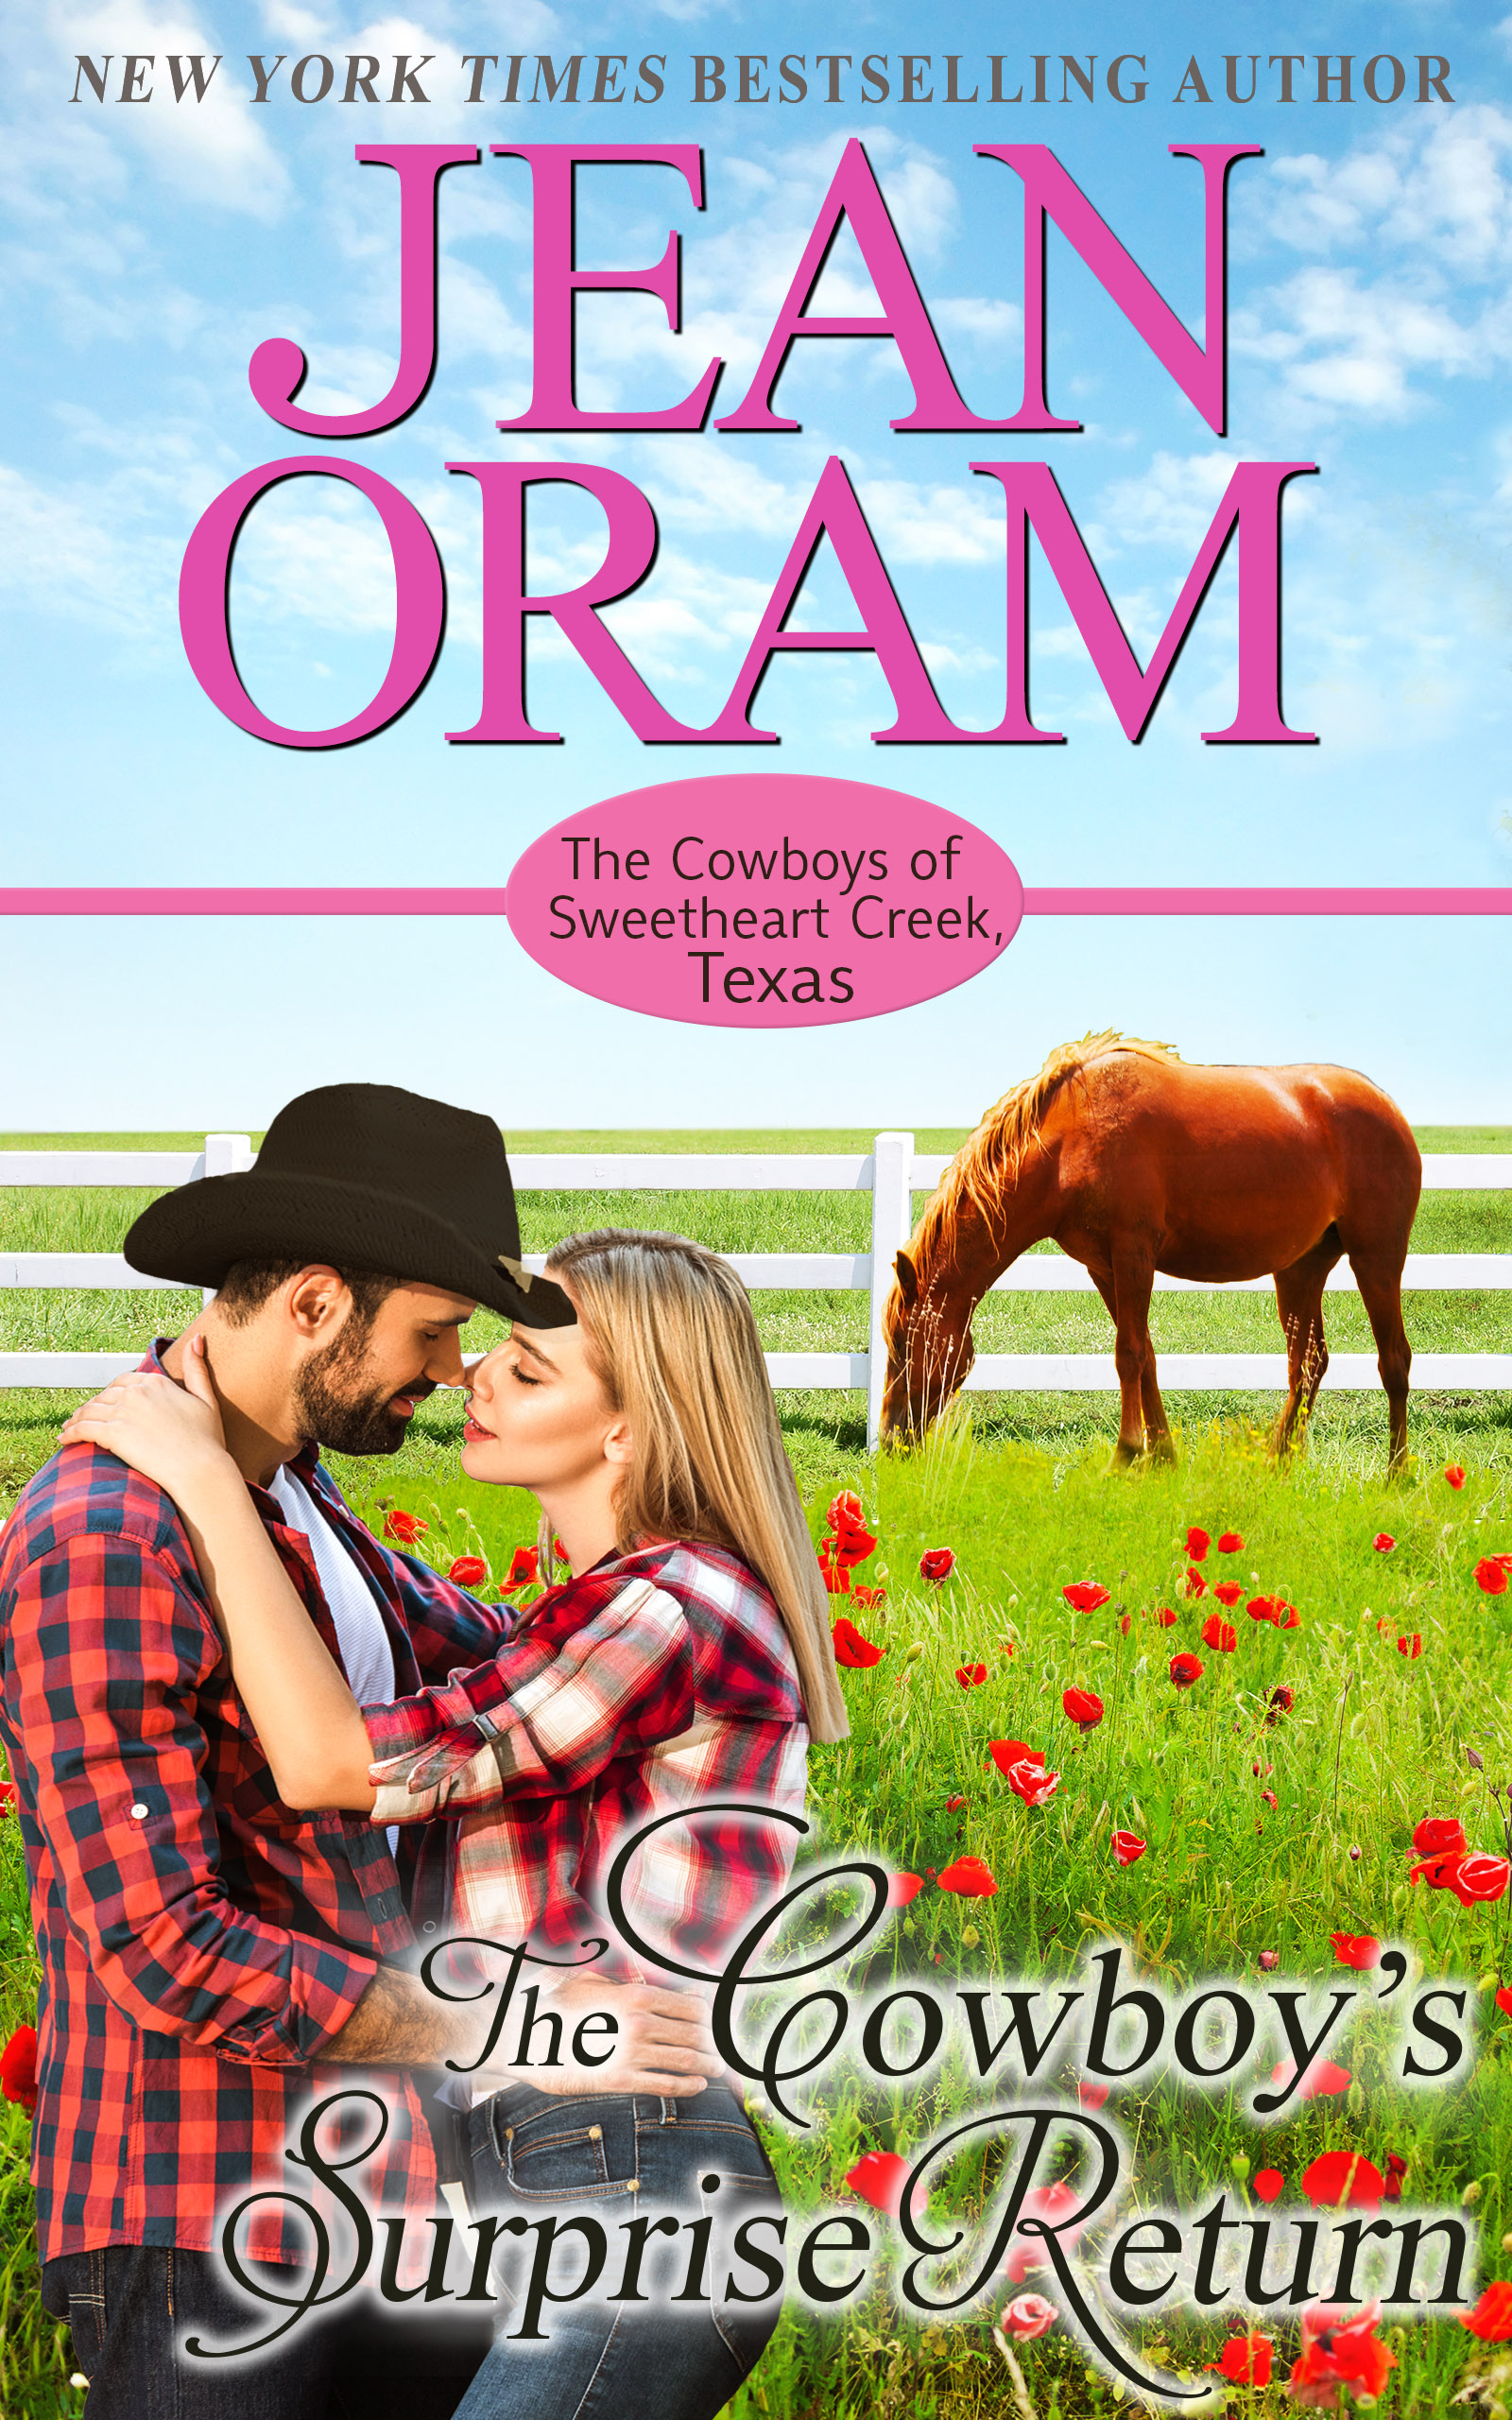 The Cowboy's Surprise Return by Jean Oram